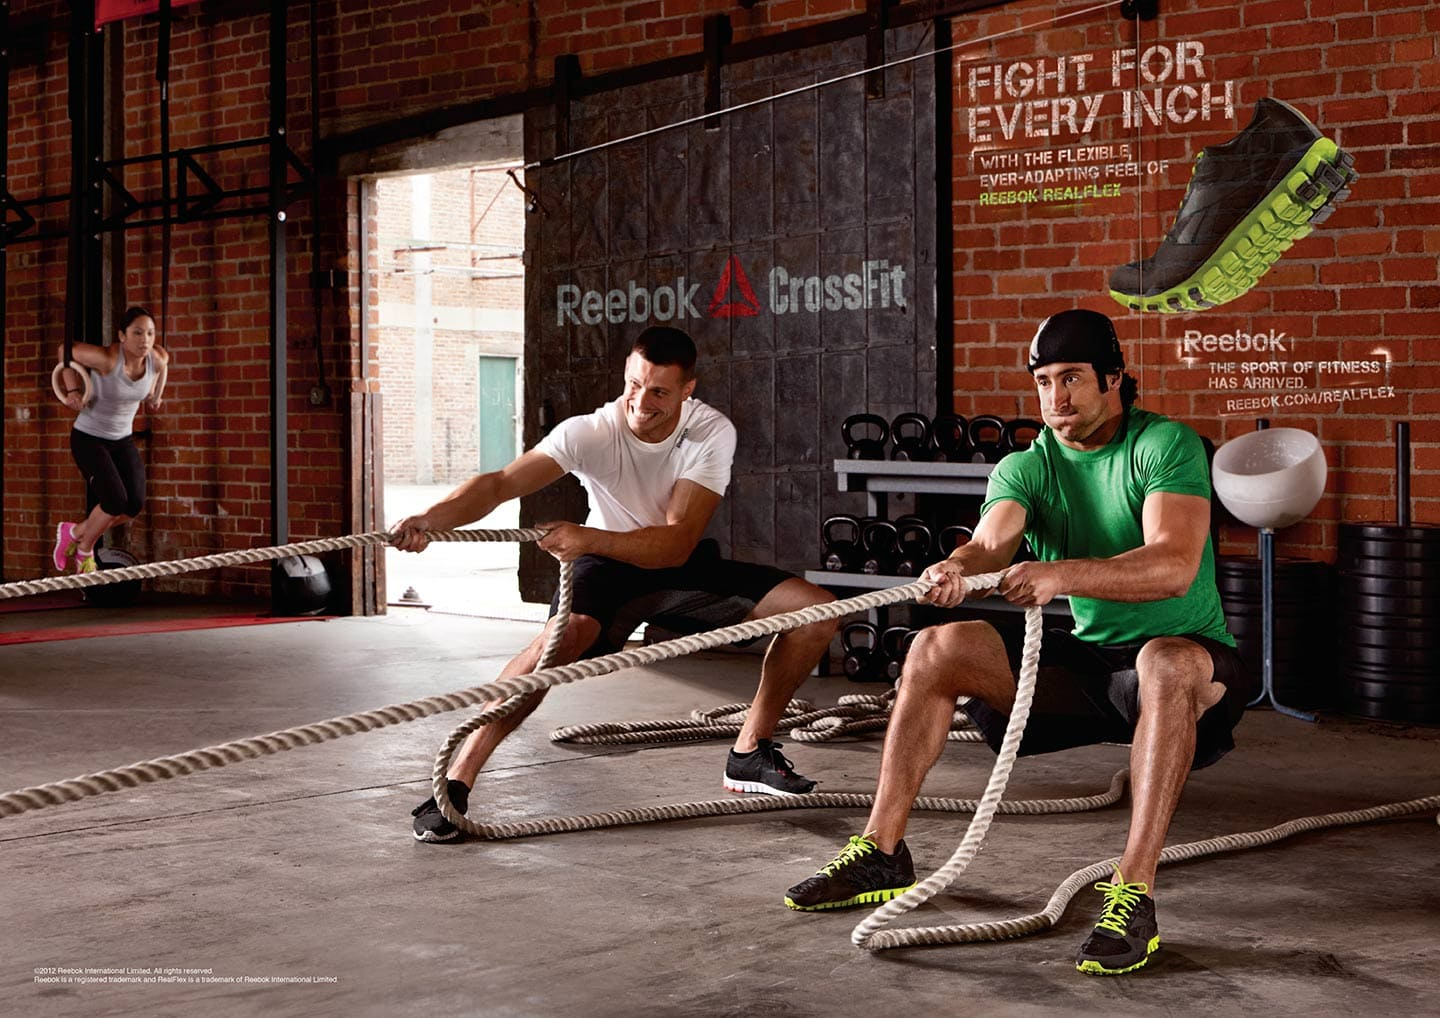 Two Men in Reebok Apparel Crossfit Workout Sled Pull